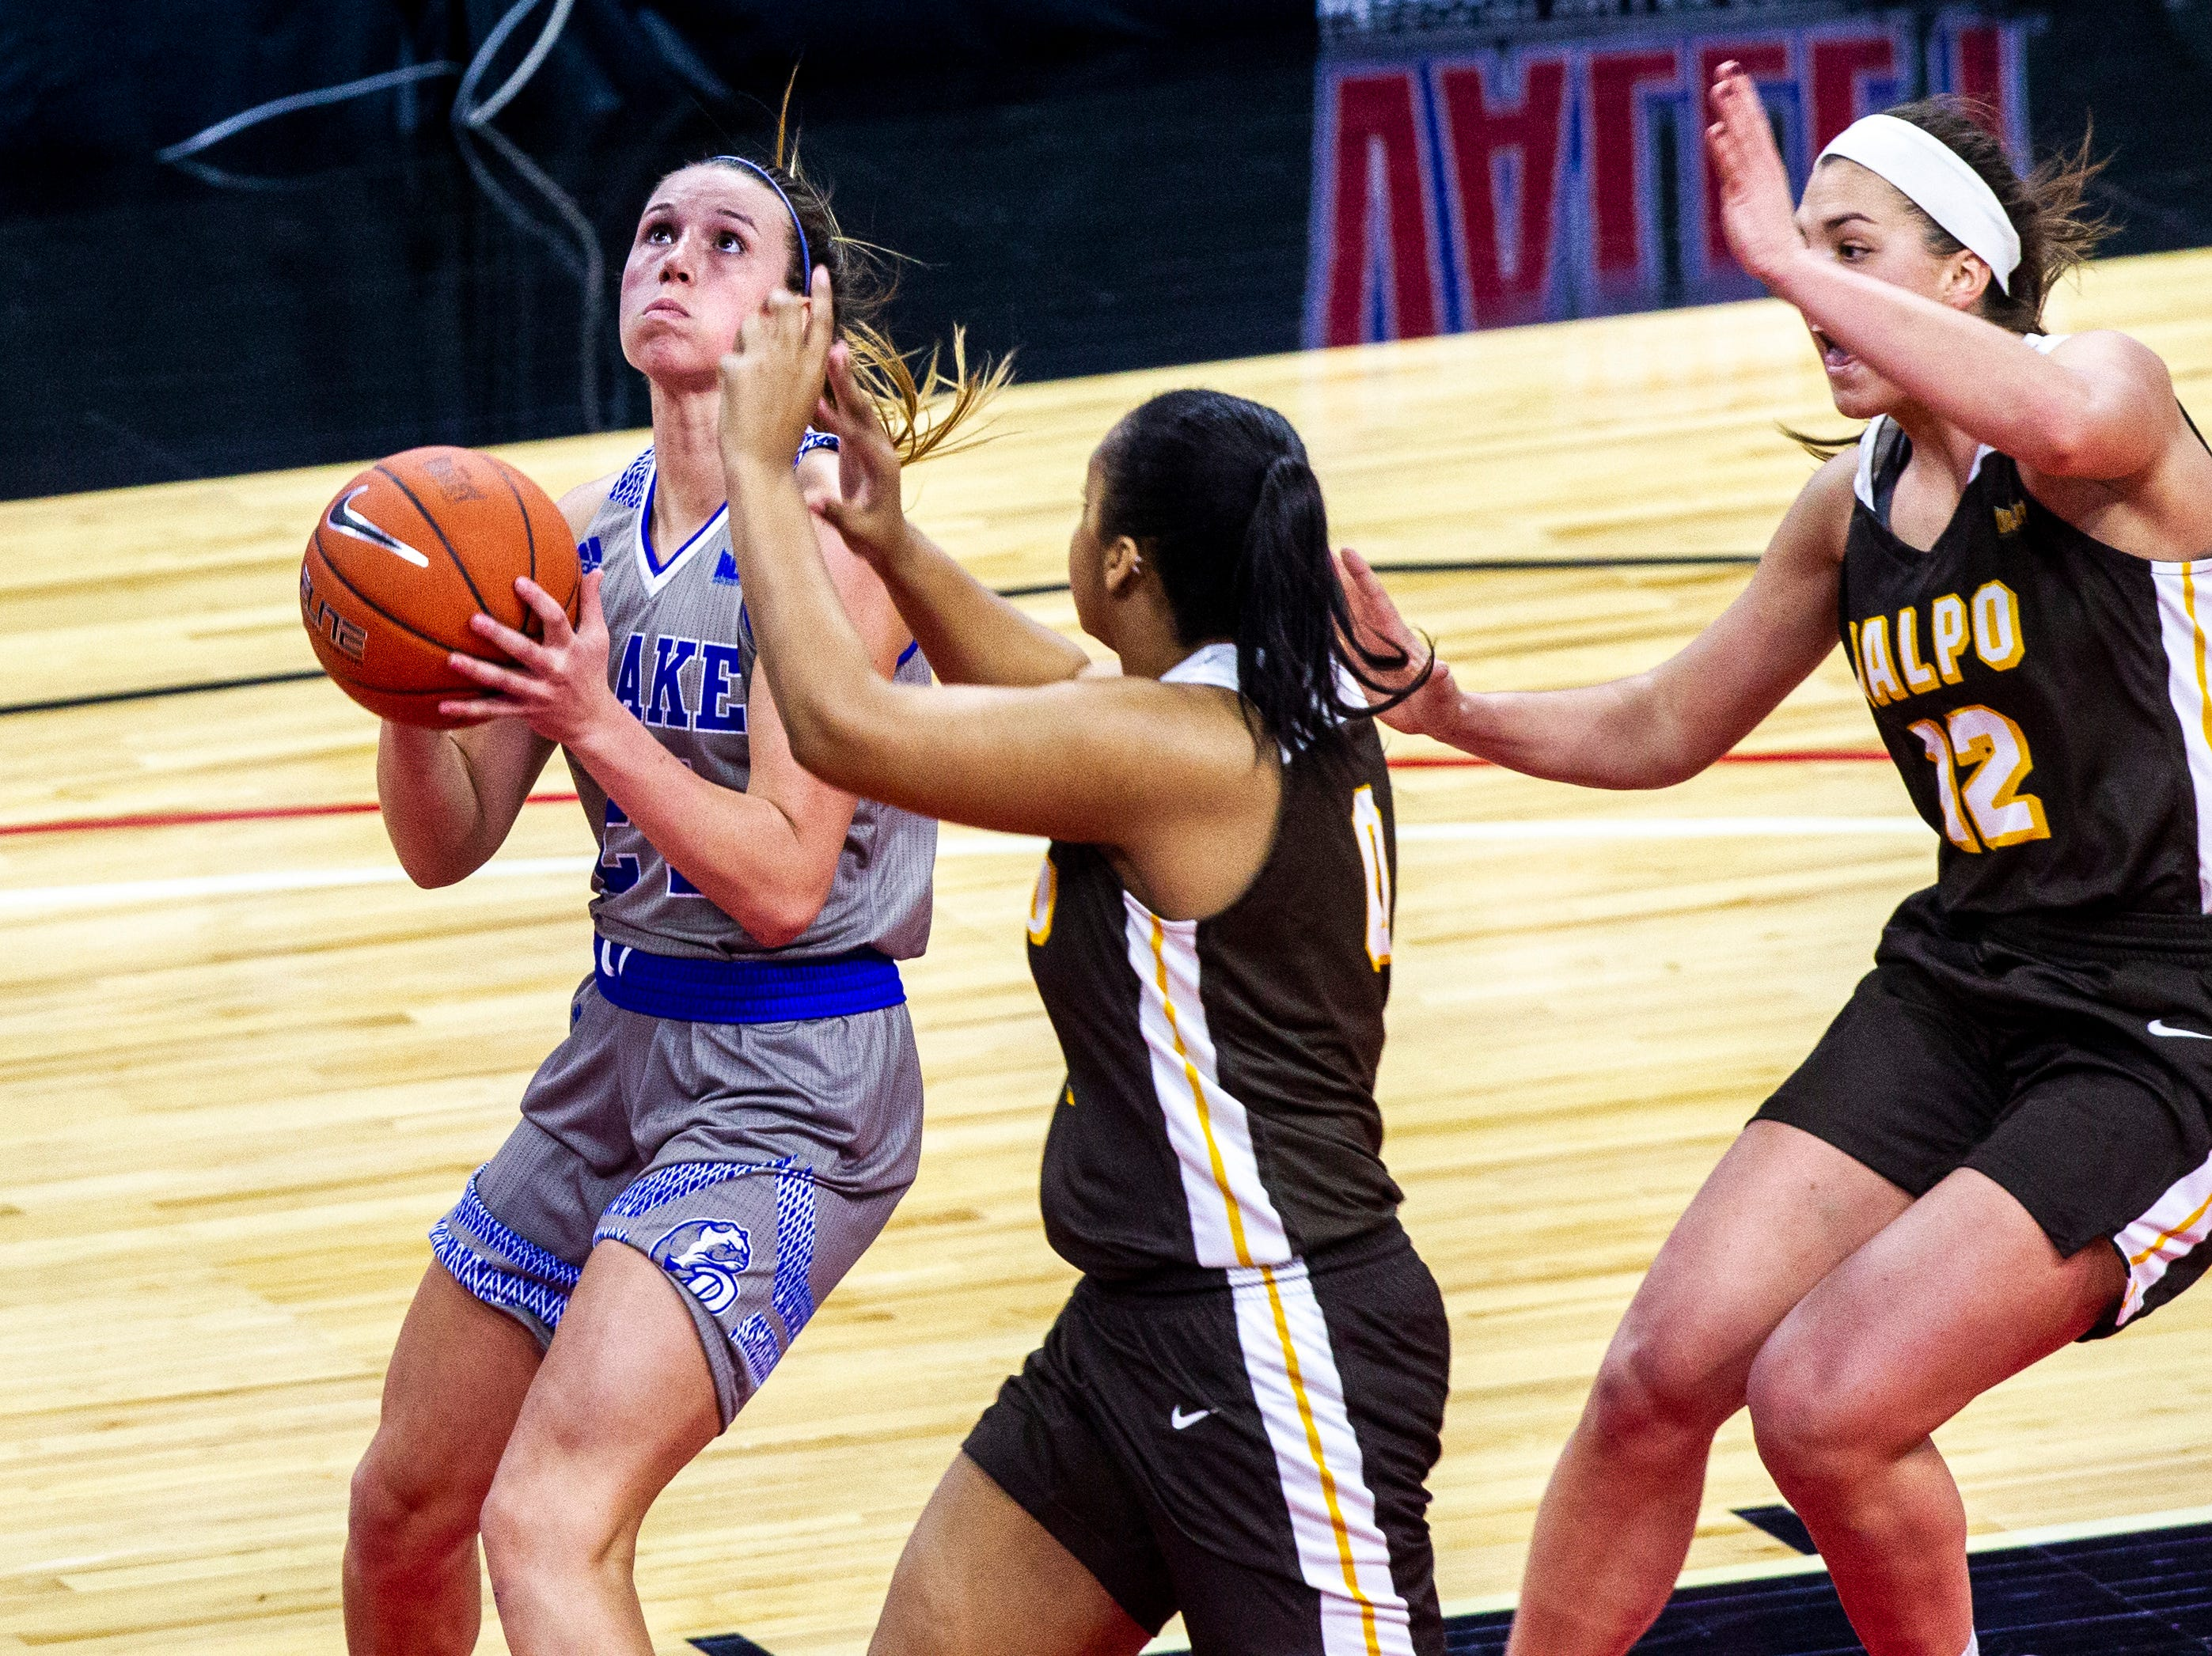 Drake guard Nicole Miller (24) drives to the basket past Valparaiso guard Maya Meredith, center, and Valparaiso's Addison Stoller (12) during a NCAA Missouri Valley Conference women's basketball quarterfinal tournament game, Friday, March 15, 2019, at the TaxSlayer Center in Moline, Illinois.